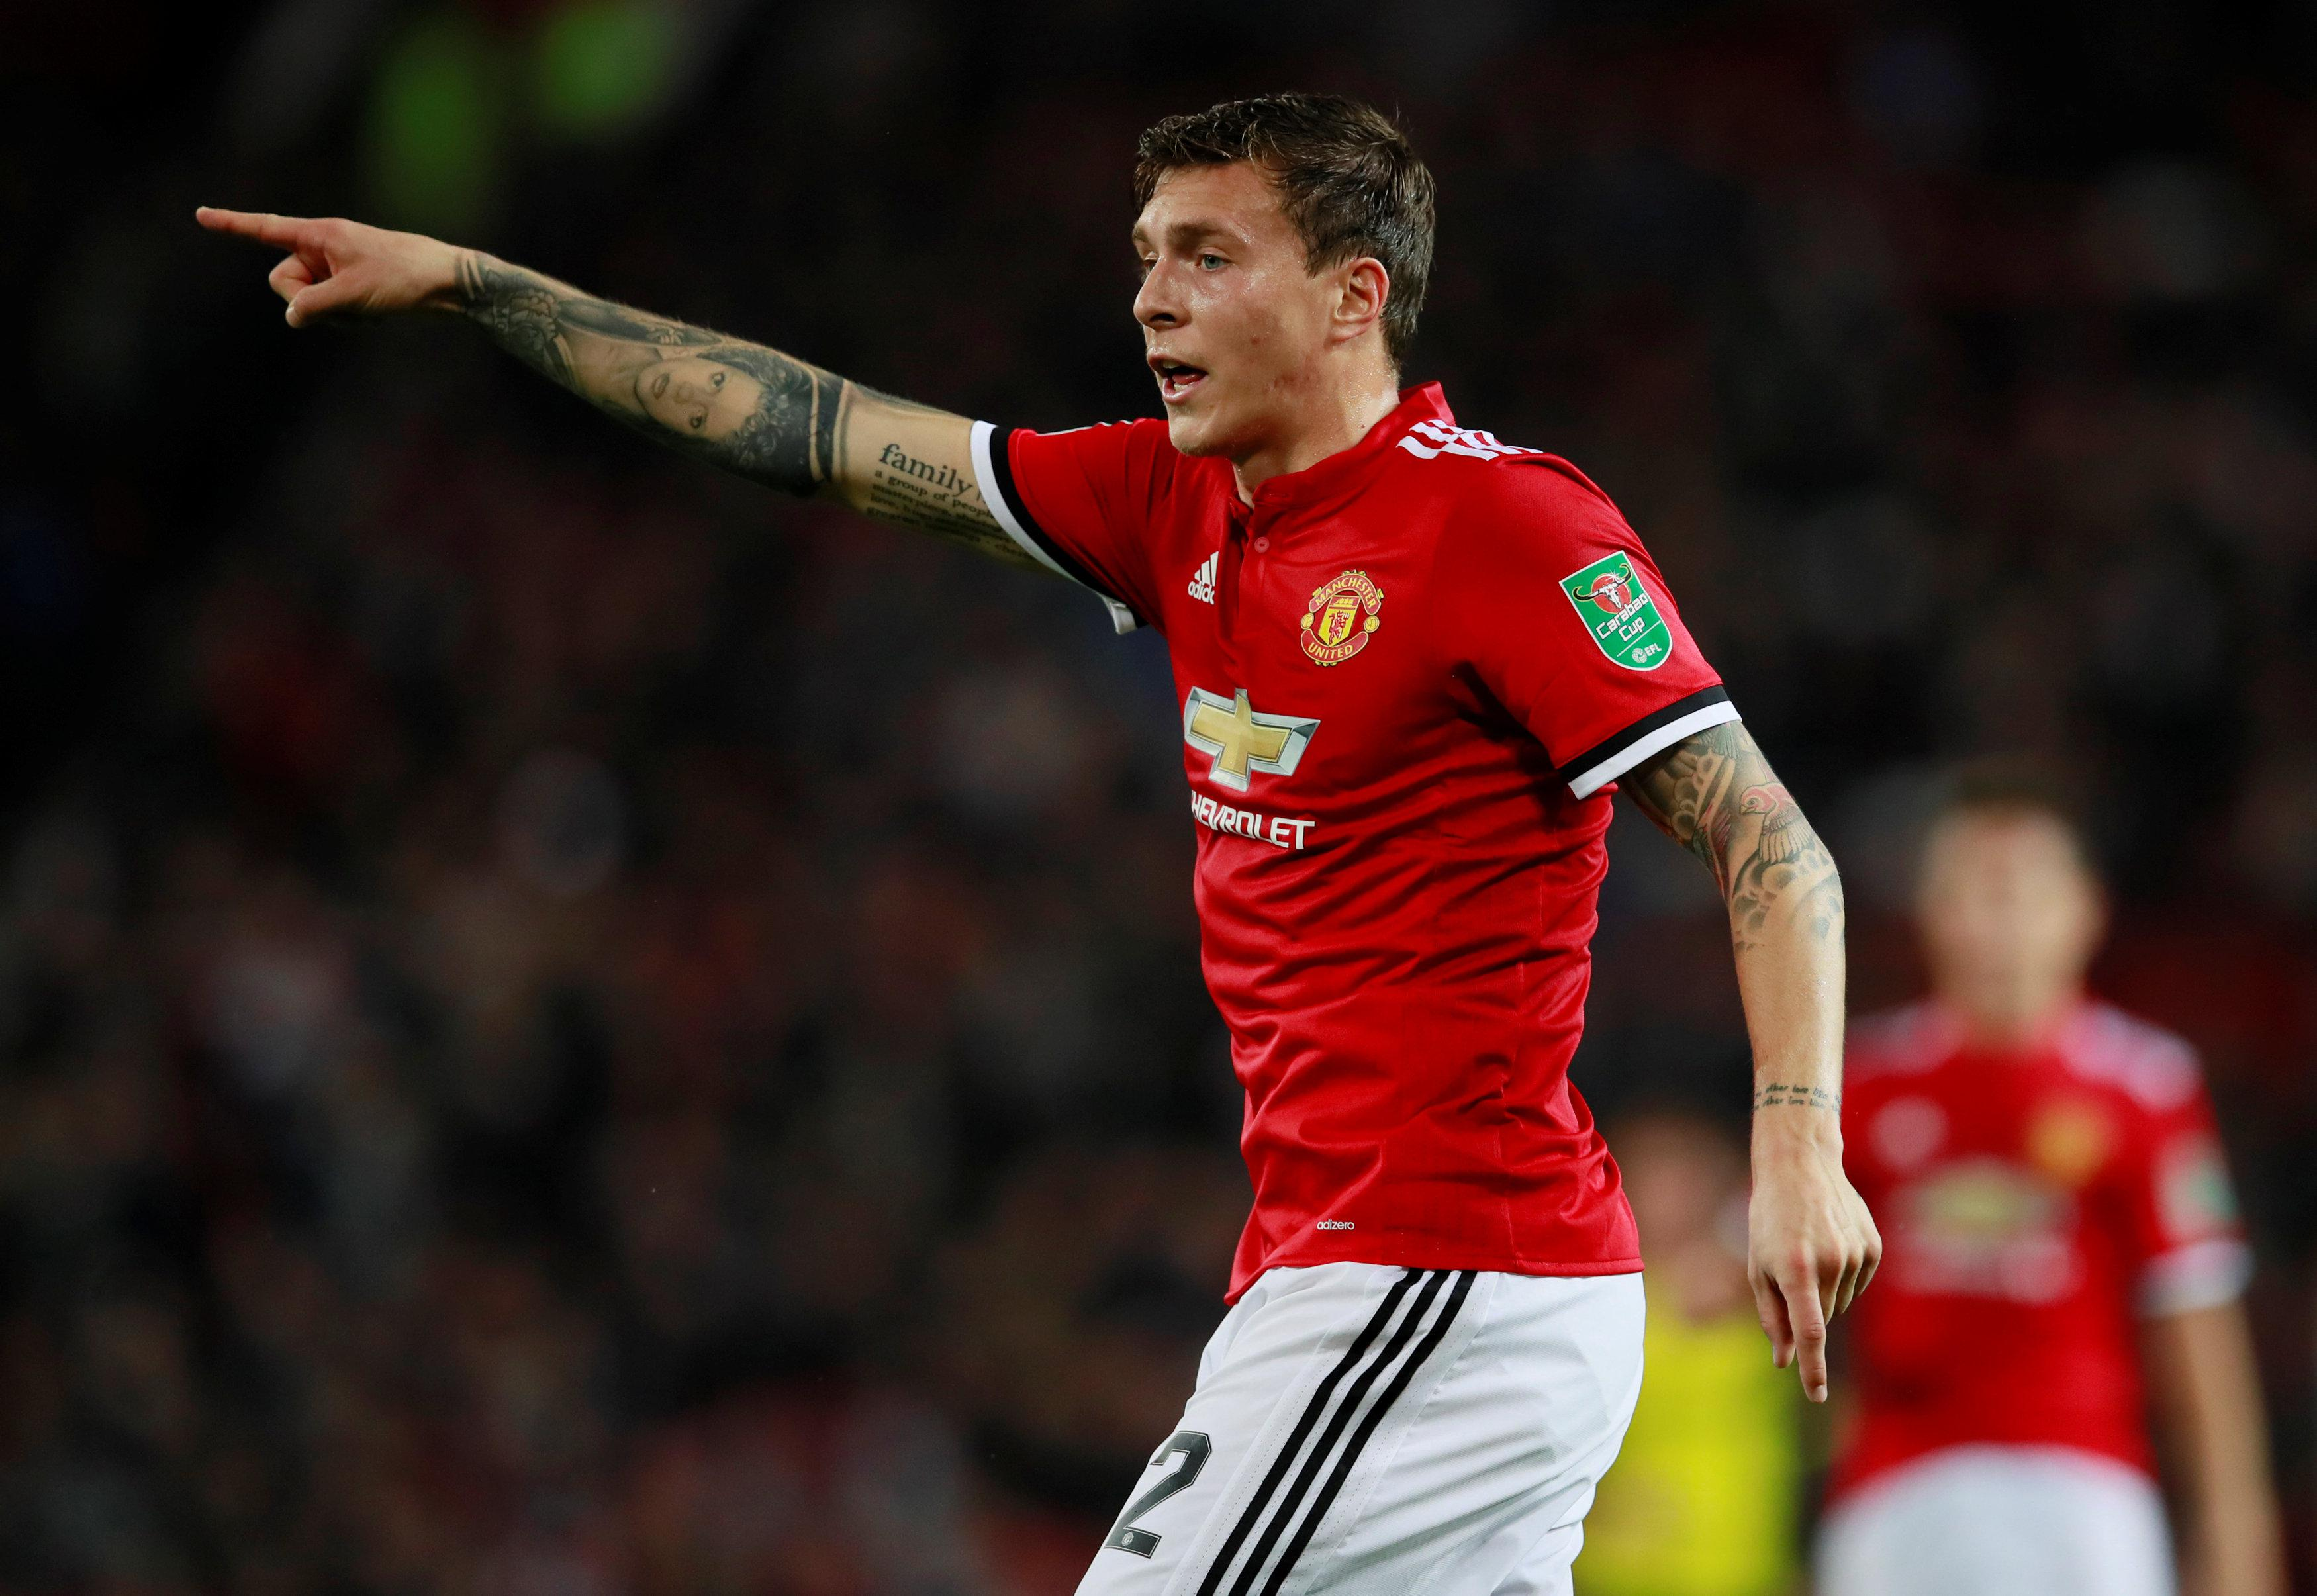 Lindelof deserves time to turn it around